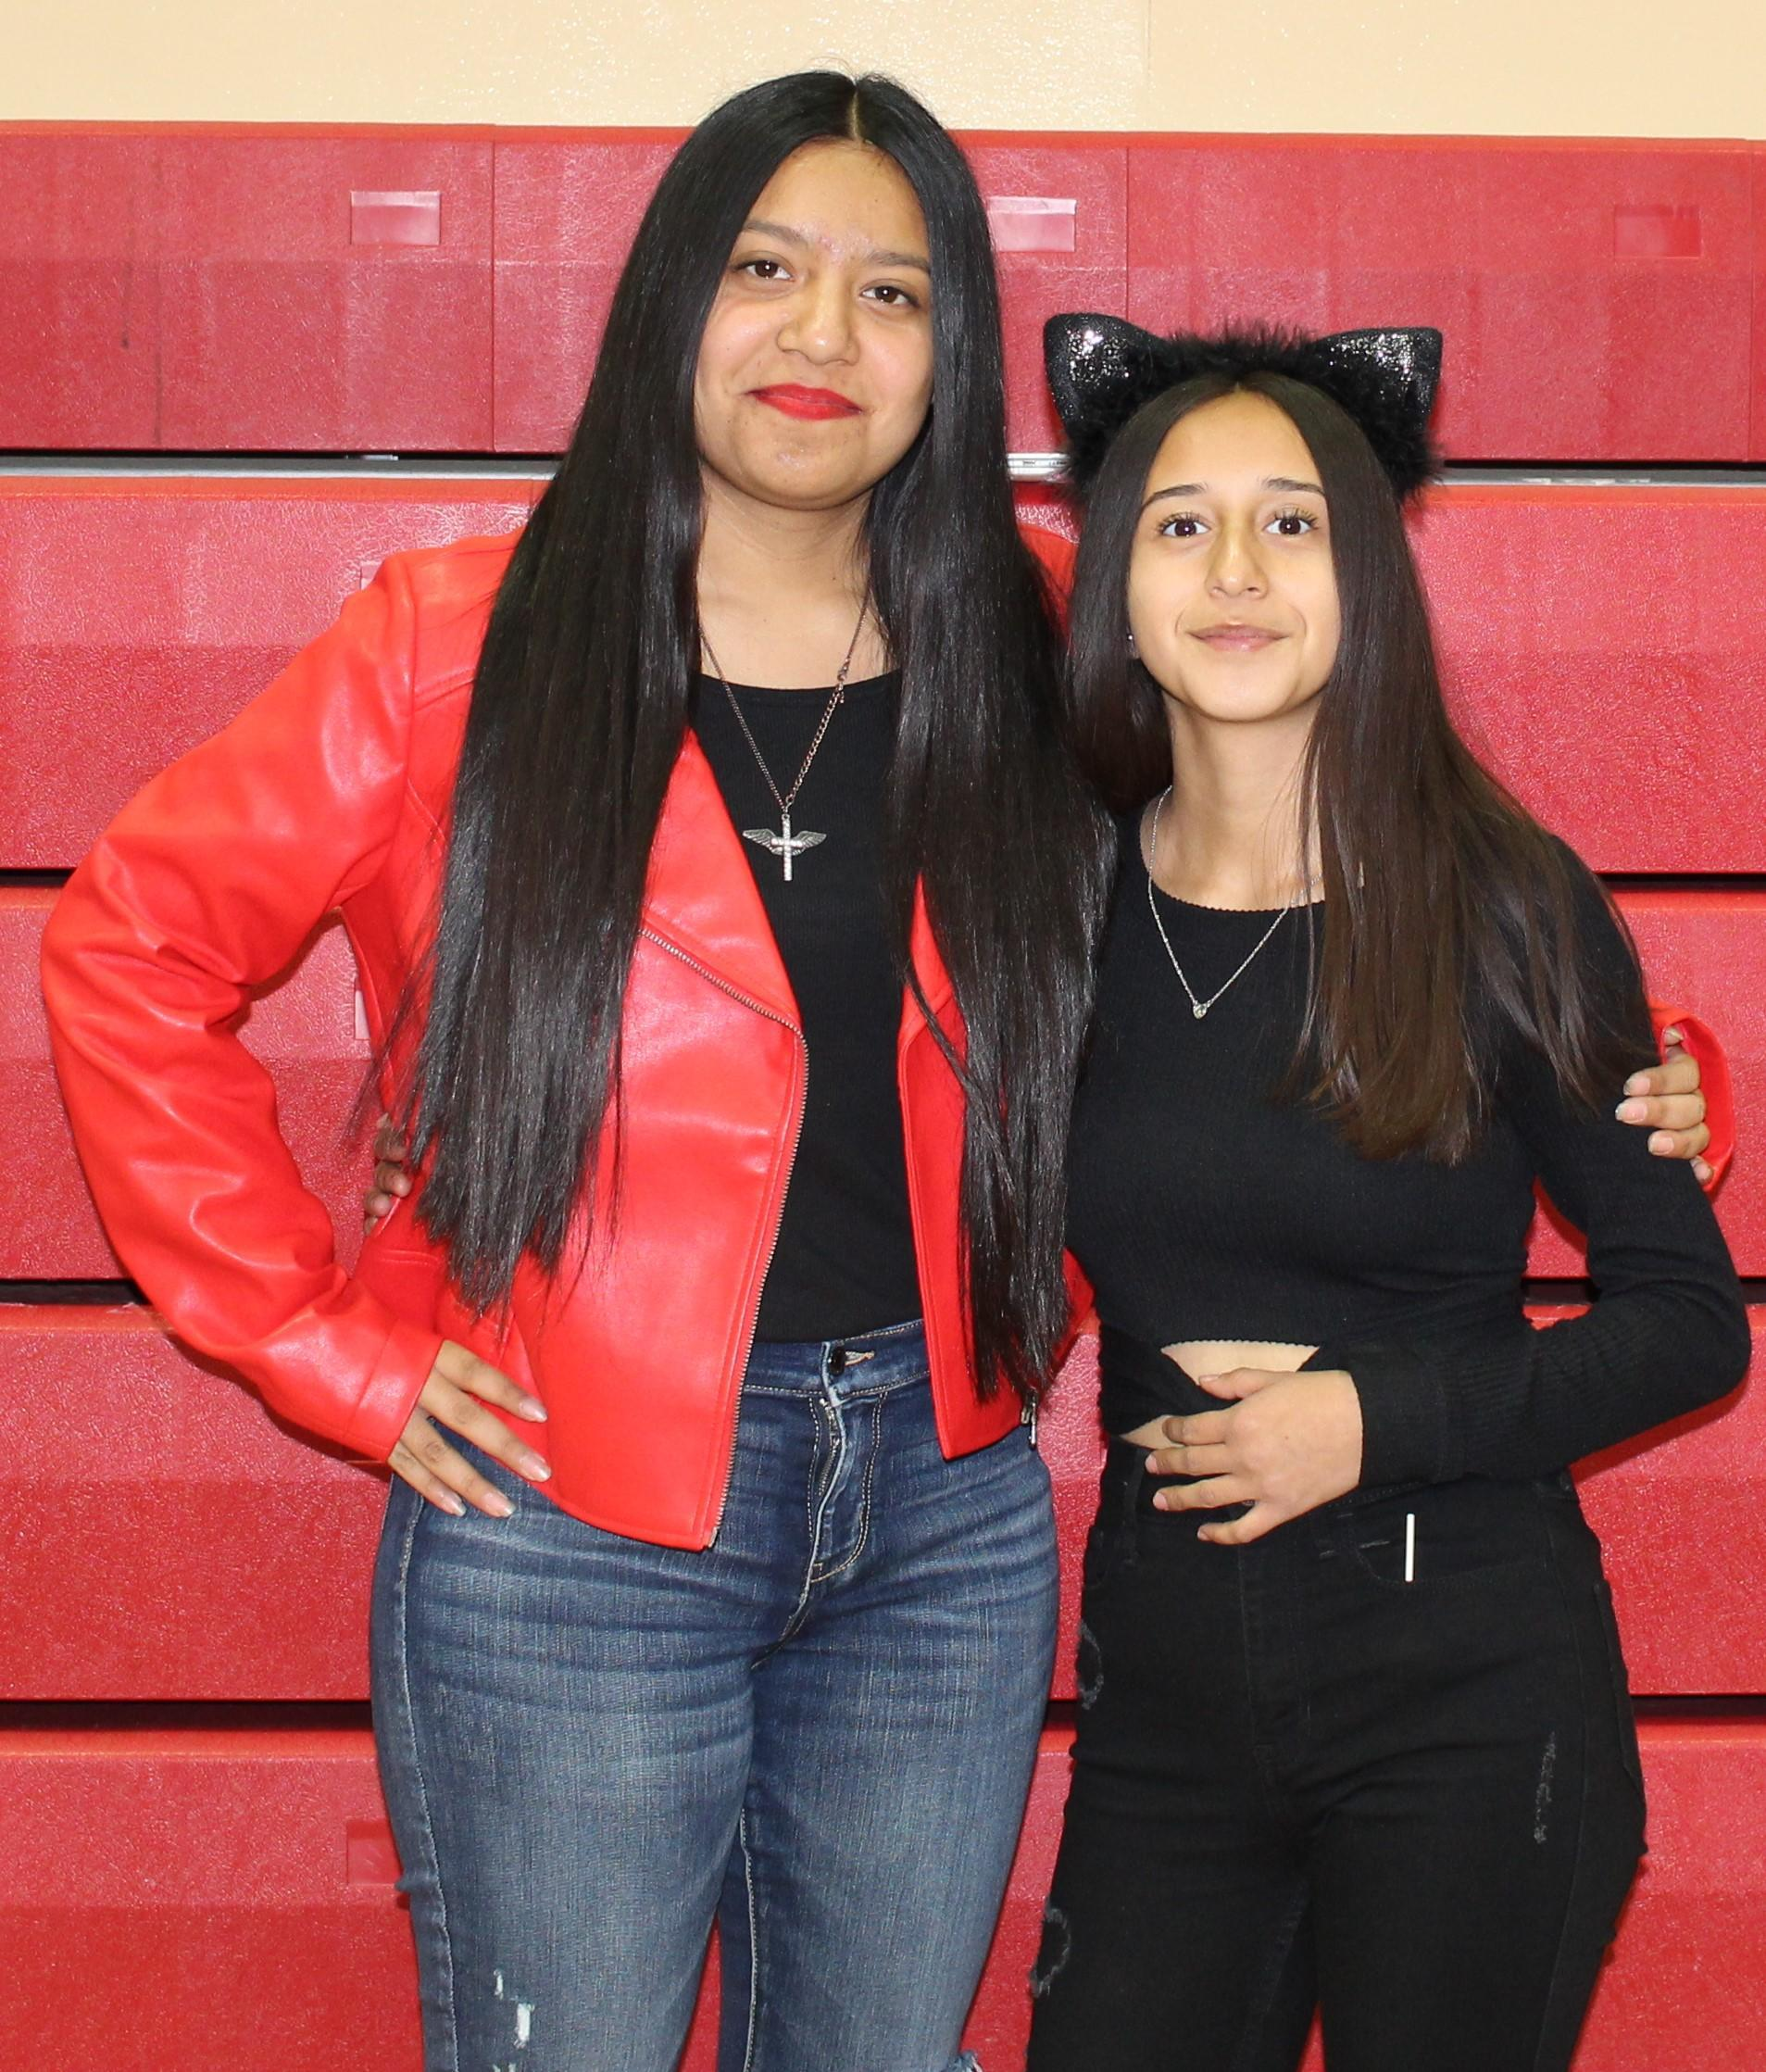 Isidora Flores as Micheal Jackson and monquie Hernandez as a Cat